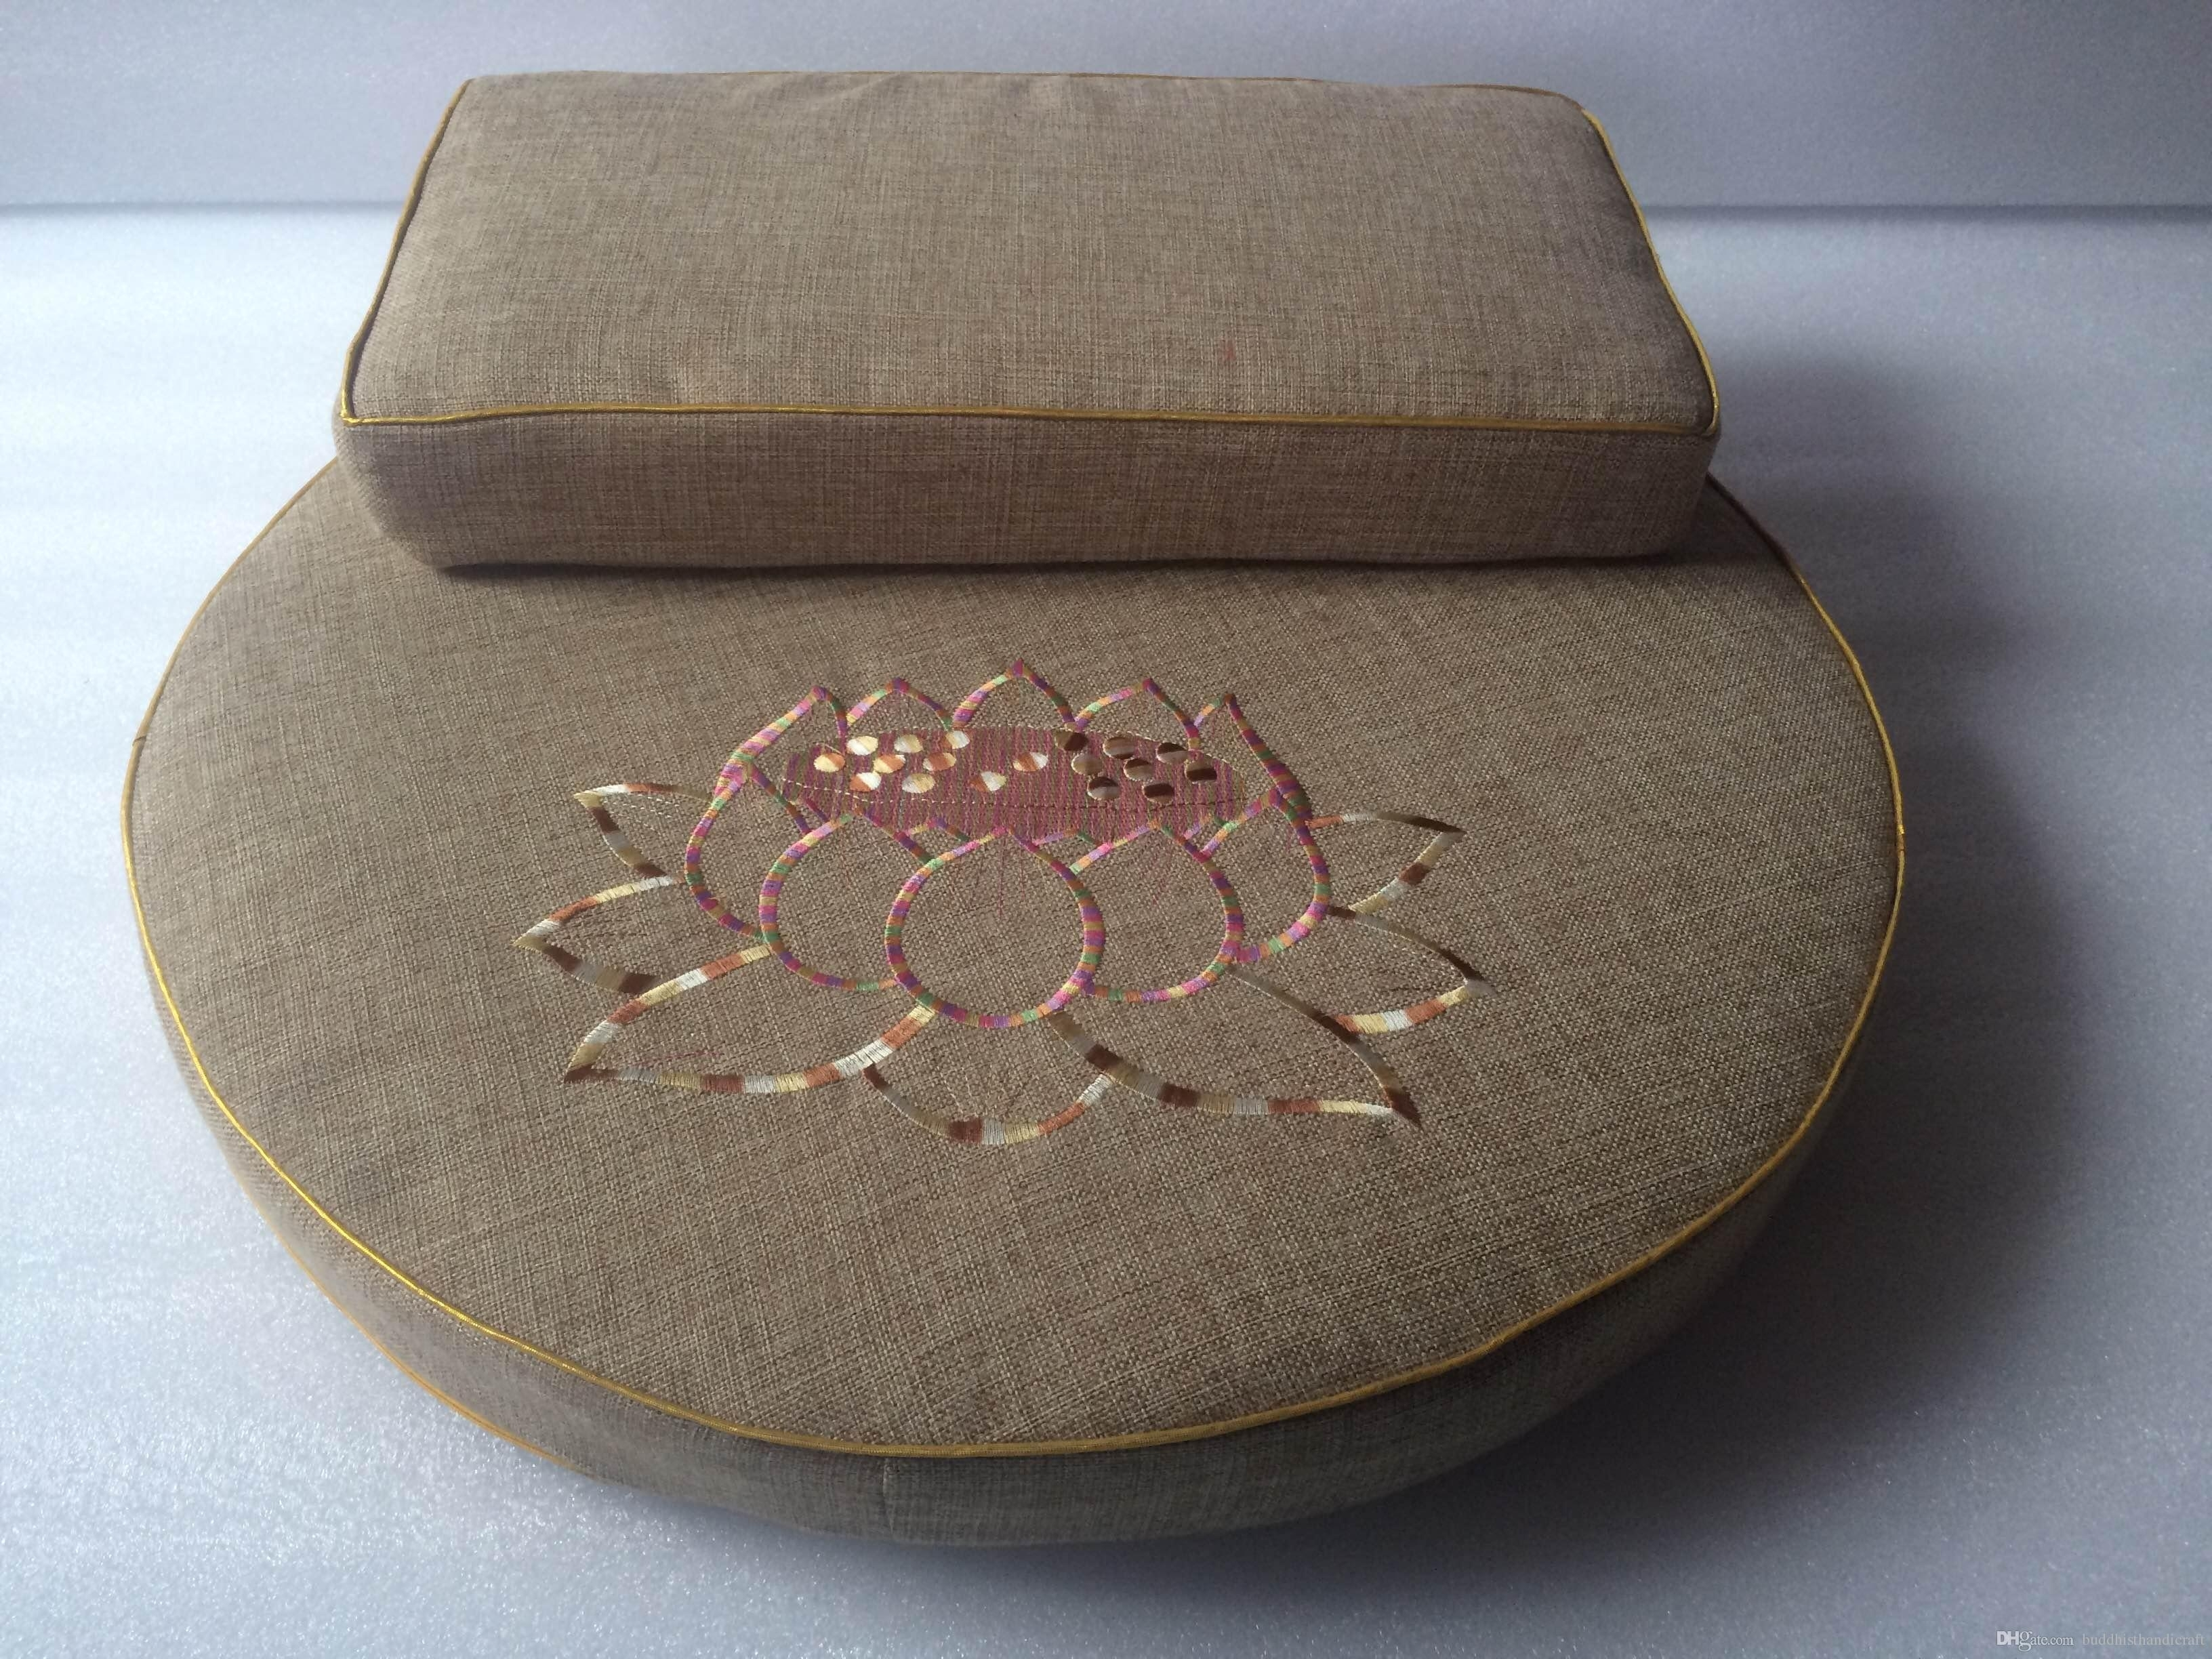 Image of: Coconut Fibre Lotus Meditation Cushions Embroidery Lotus 60cm Regarding Outdoor Meditation Cushion Ideas For Outdoor Meditation Cushion